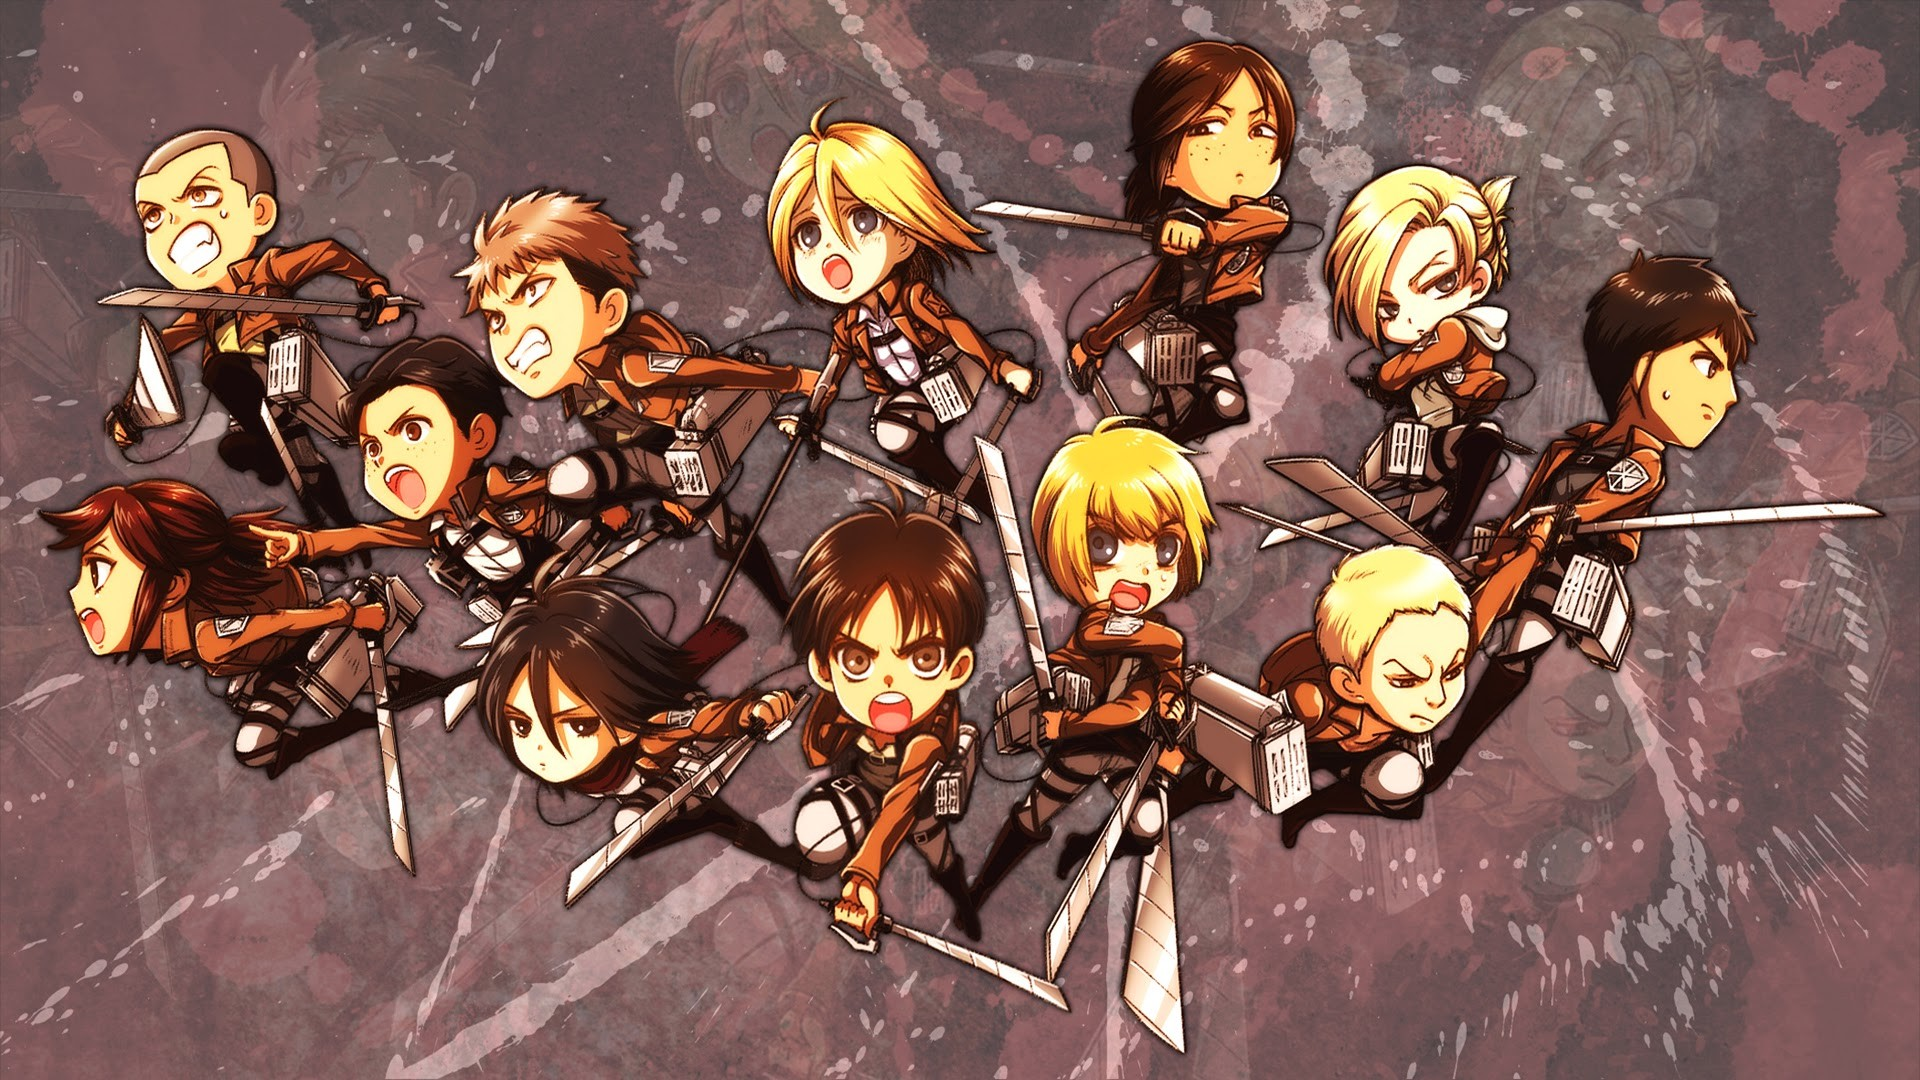 Attack on Titan Chibi Wallpaper HD 63 images 1920x1080